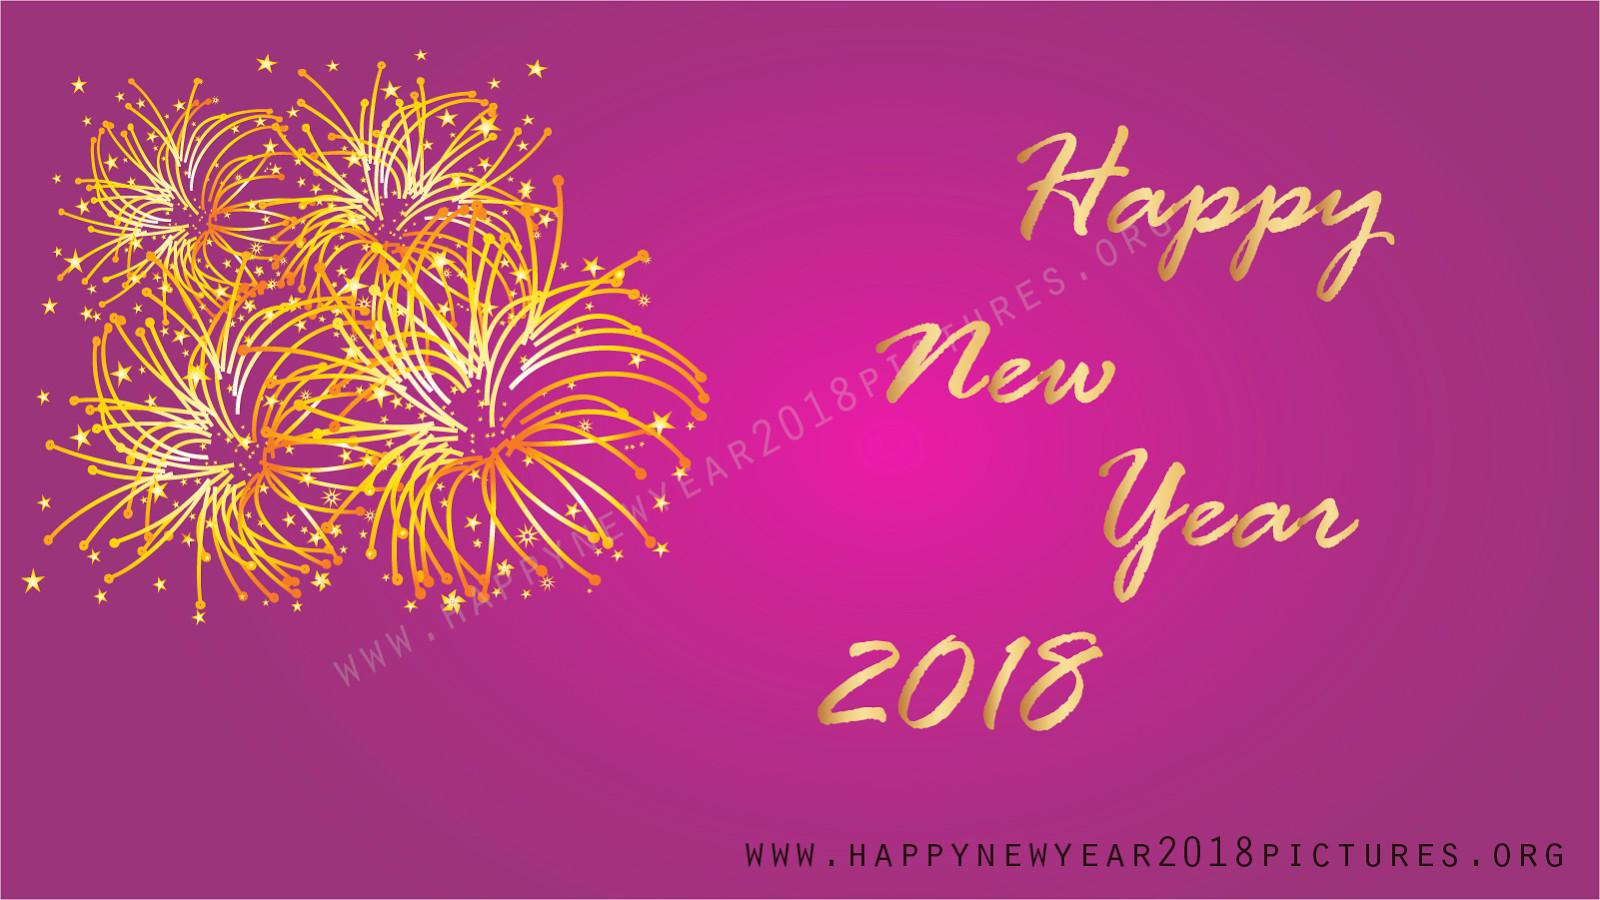 Happy New Year 2018 Cards Messages Friends